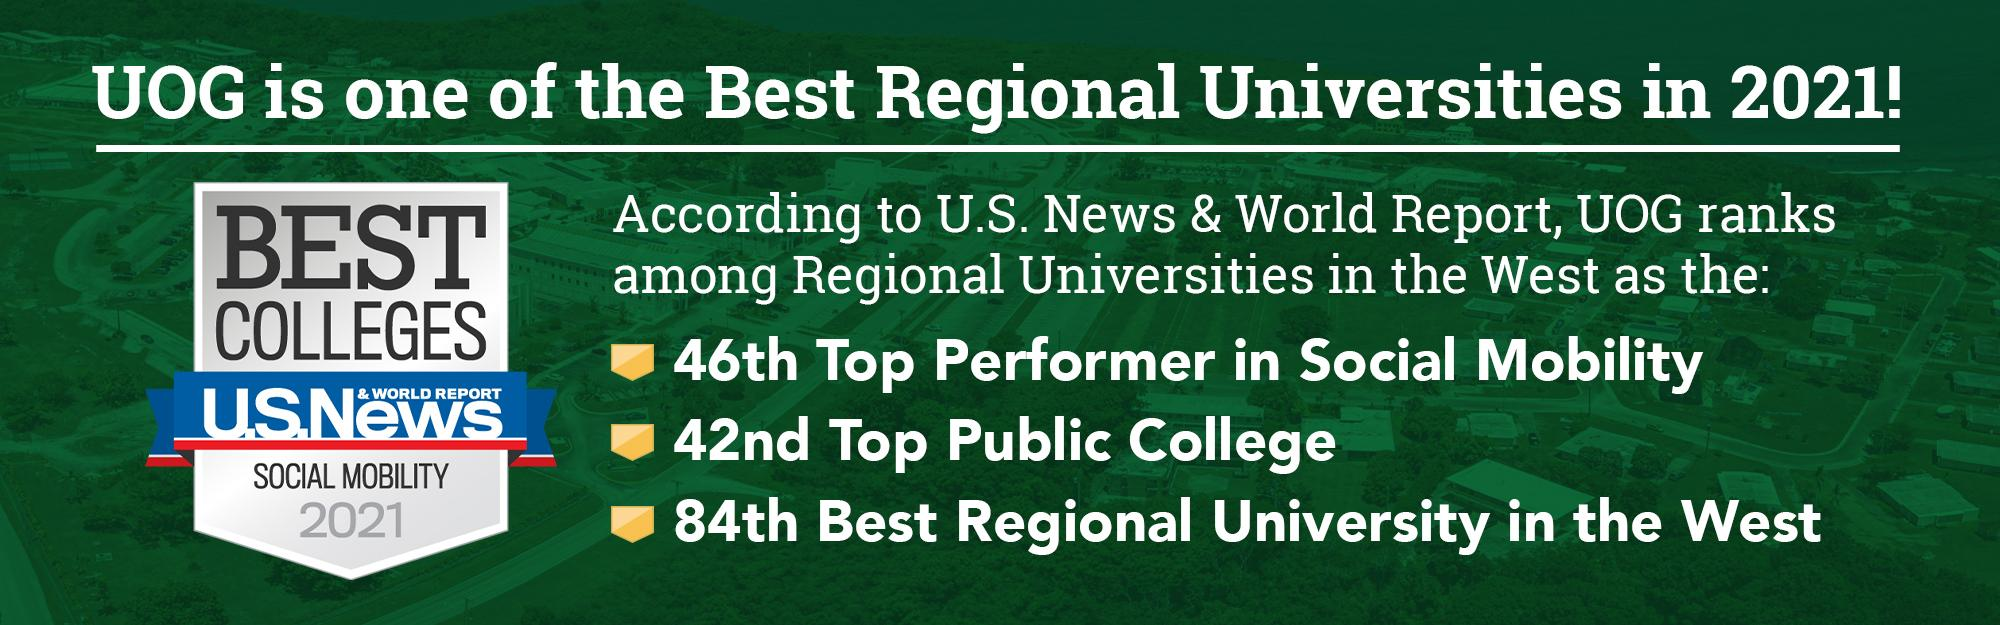 According to U.S. News and World Report, UOG ranks among Regional Universities in the West as the 46th top performer in social mobility, 42nd top public college, and 84th best regional university in the West.